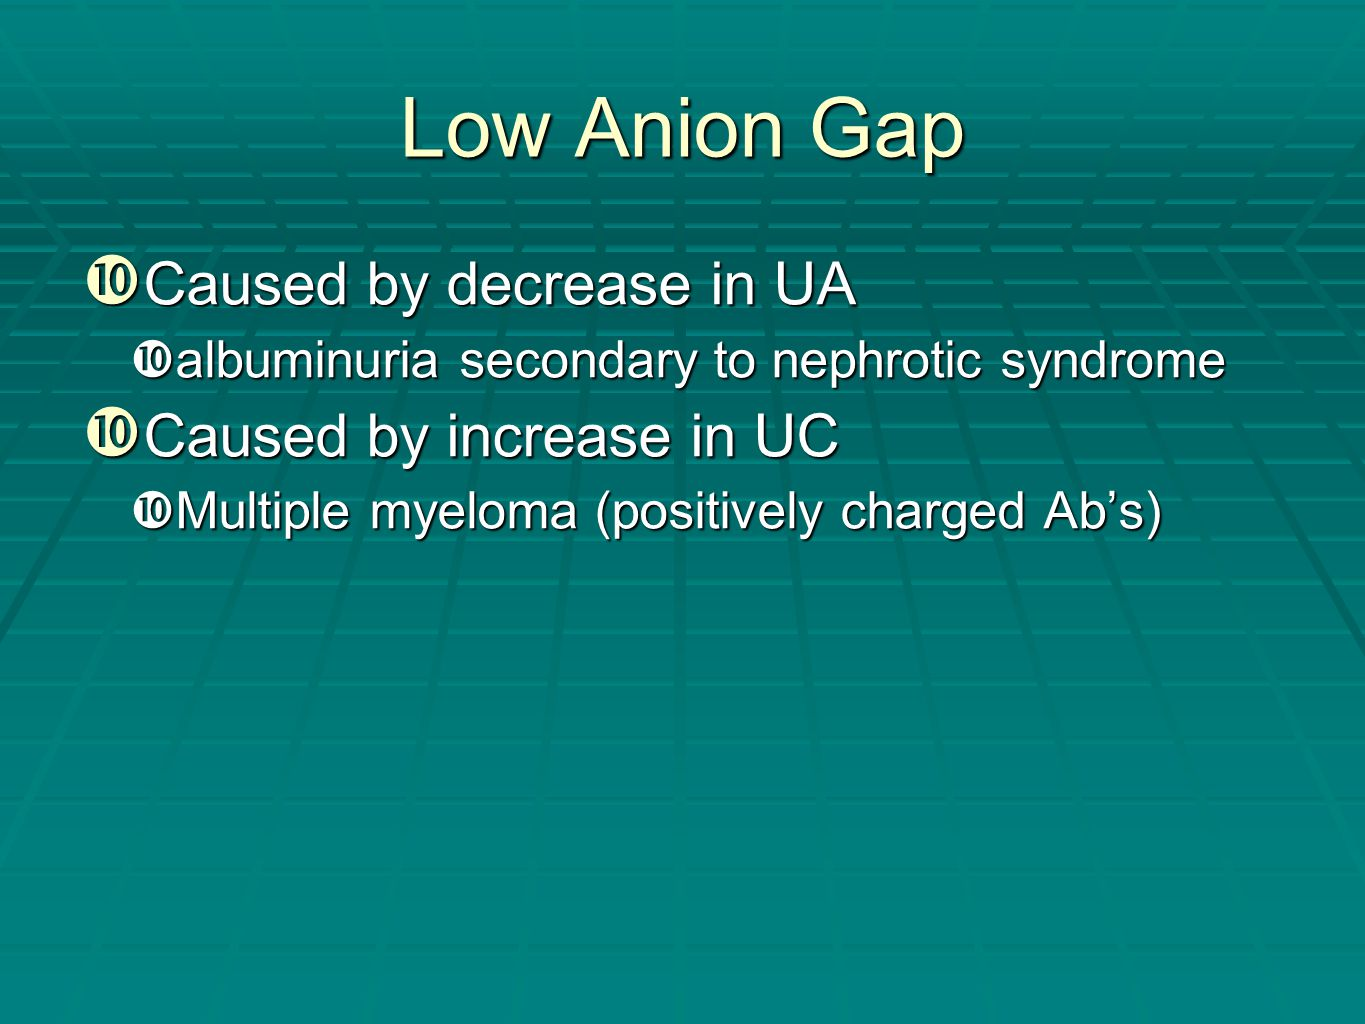 Low Anion Gap  Caused by decrease in UA  albuminuria secondary to nephrotic syndrome  Caused by increase in UC  Multiple myeloma (positively charg